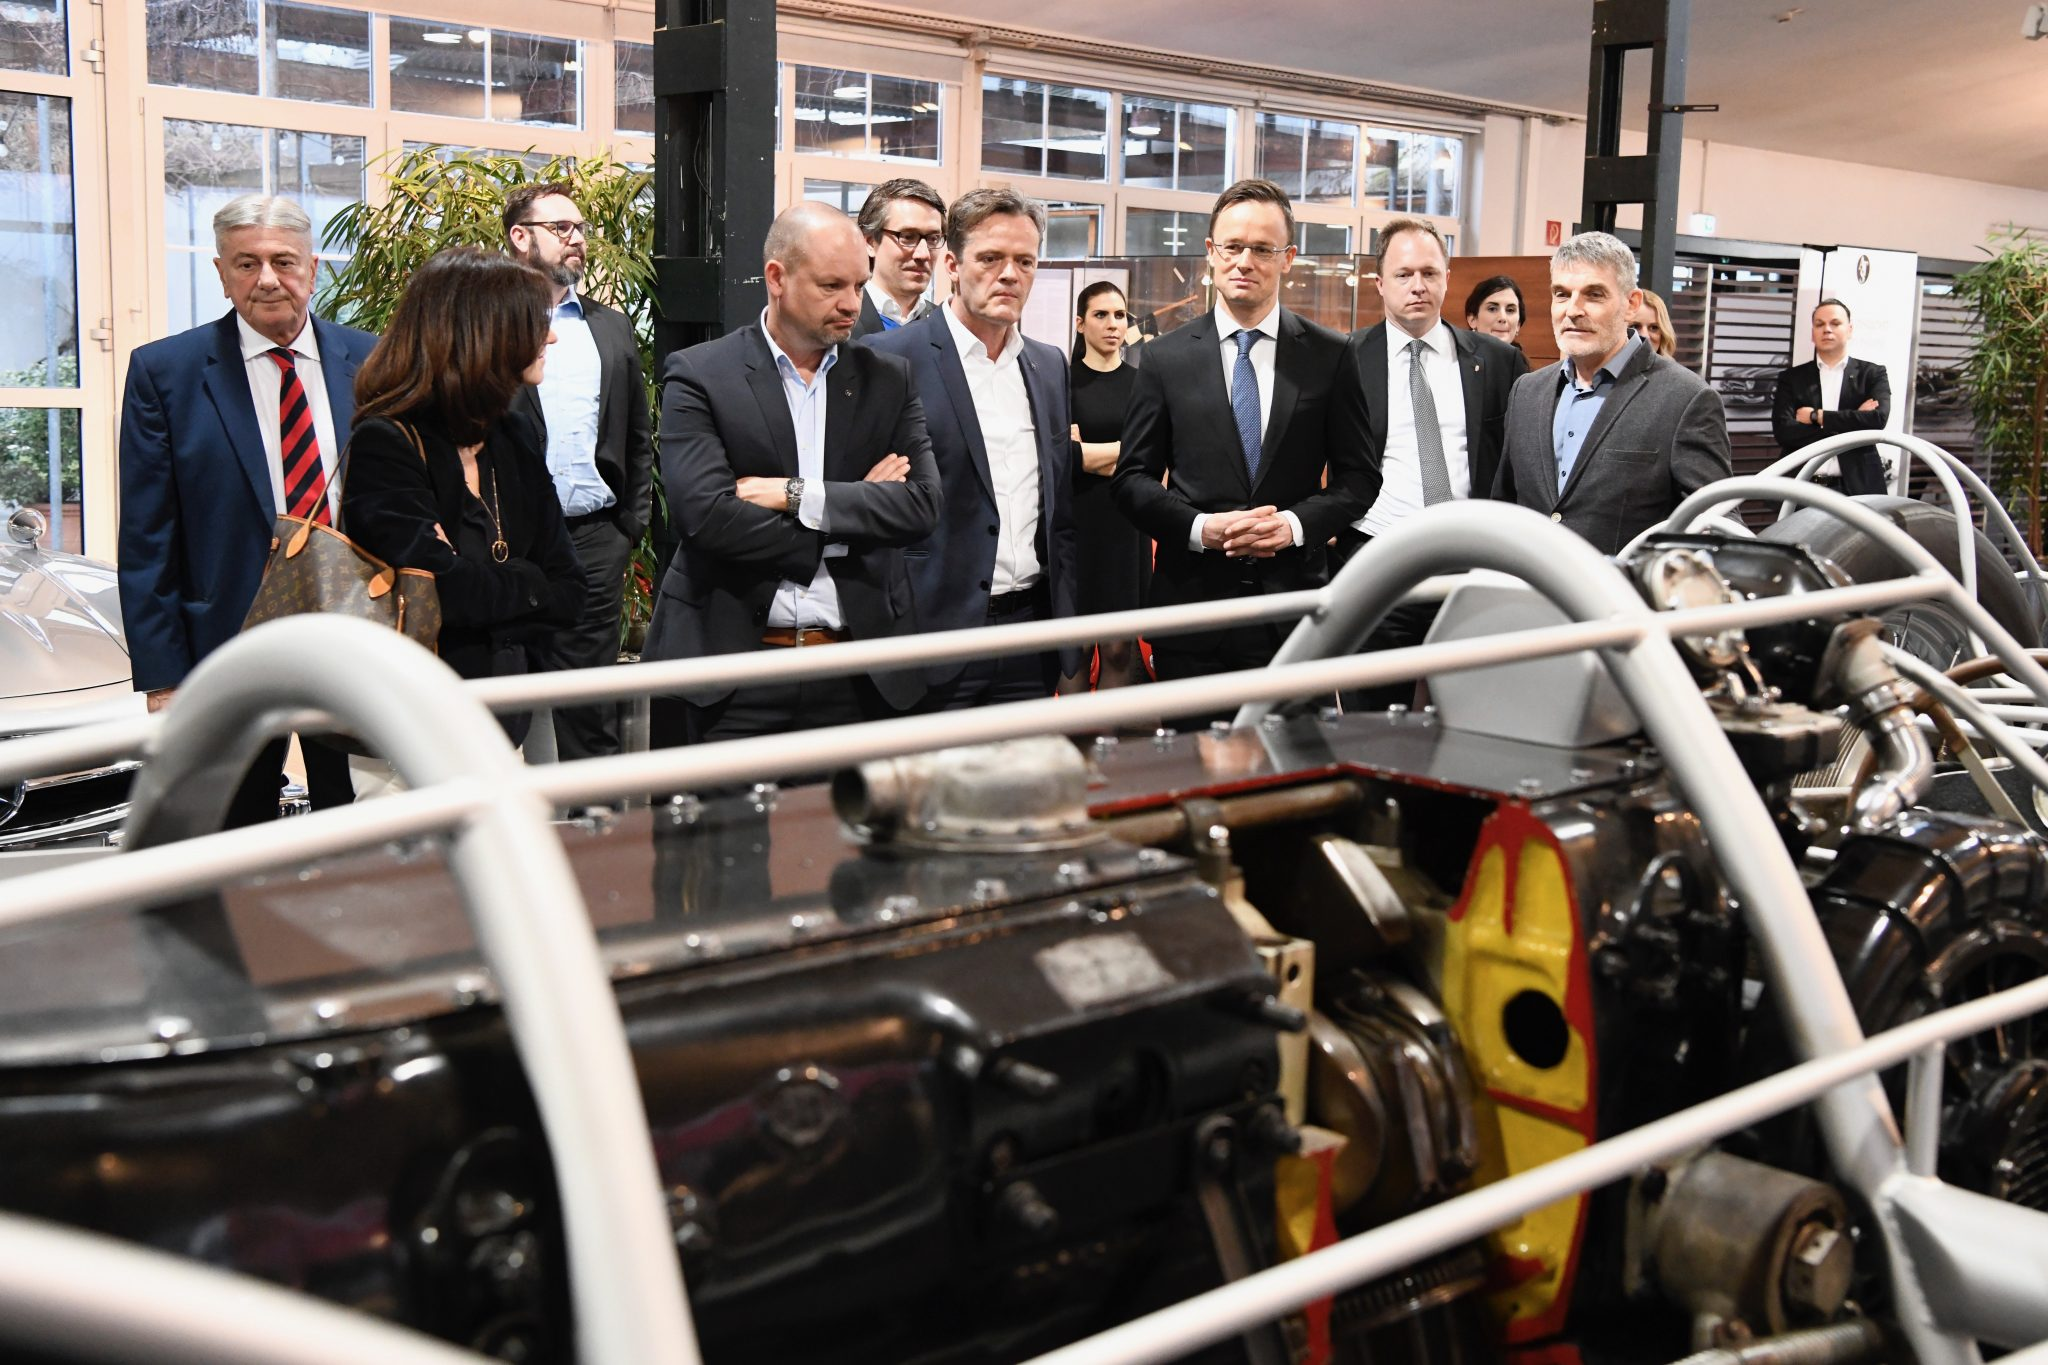 Foreign Minister Hails Increasing Baden-Wuerttemberg Investment in Hungary bf8563020d